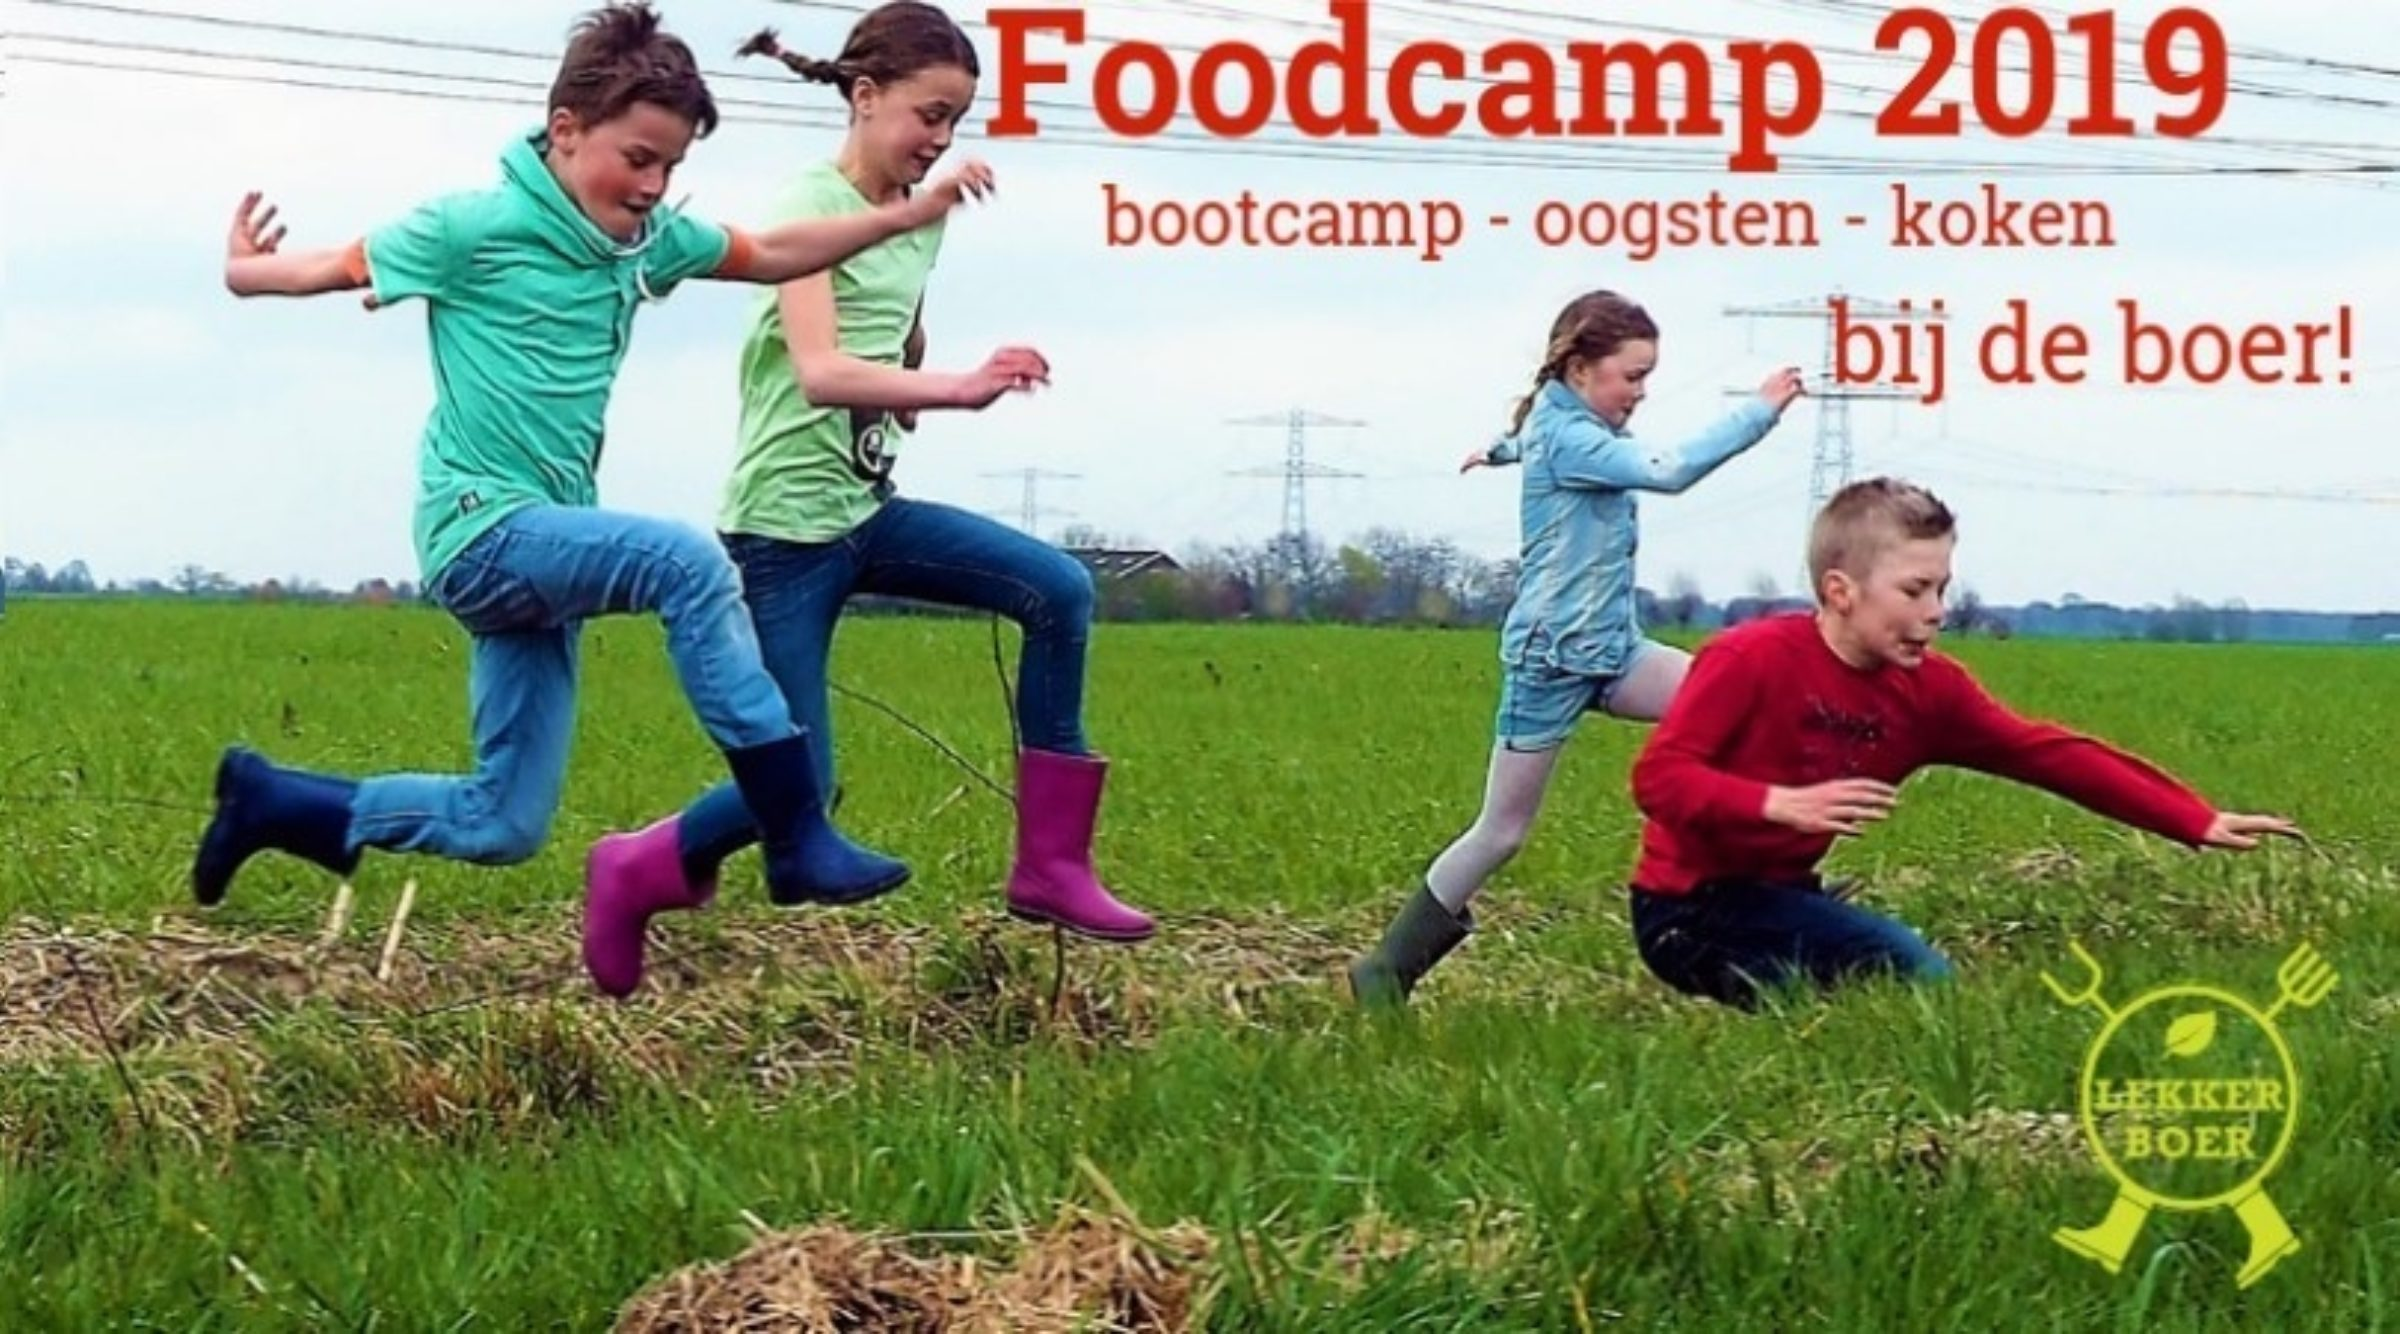 Foodcamp banner fb 2019 campagnebeeld 35hxmr5a7d